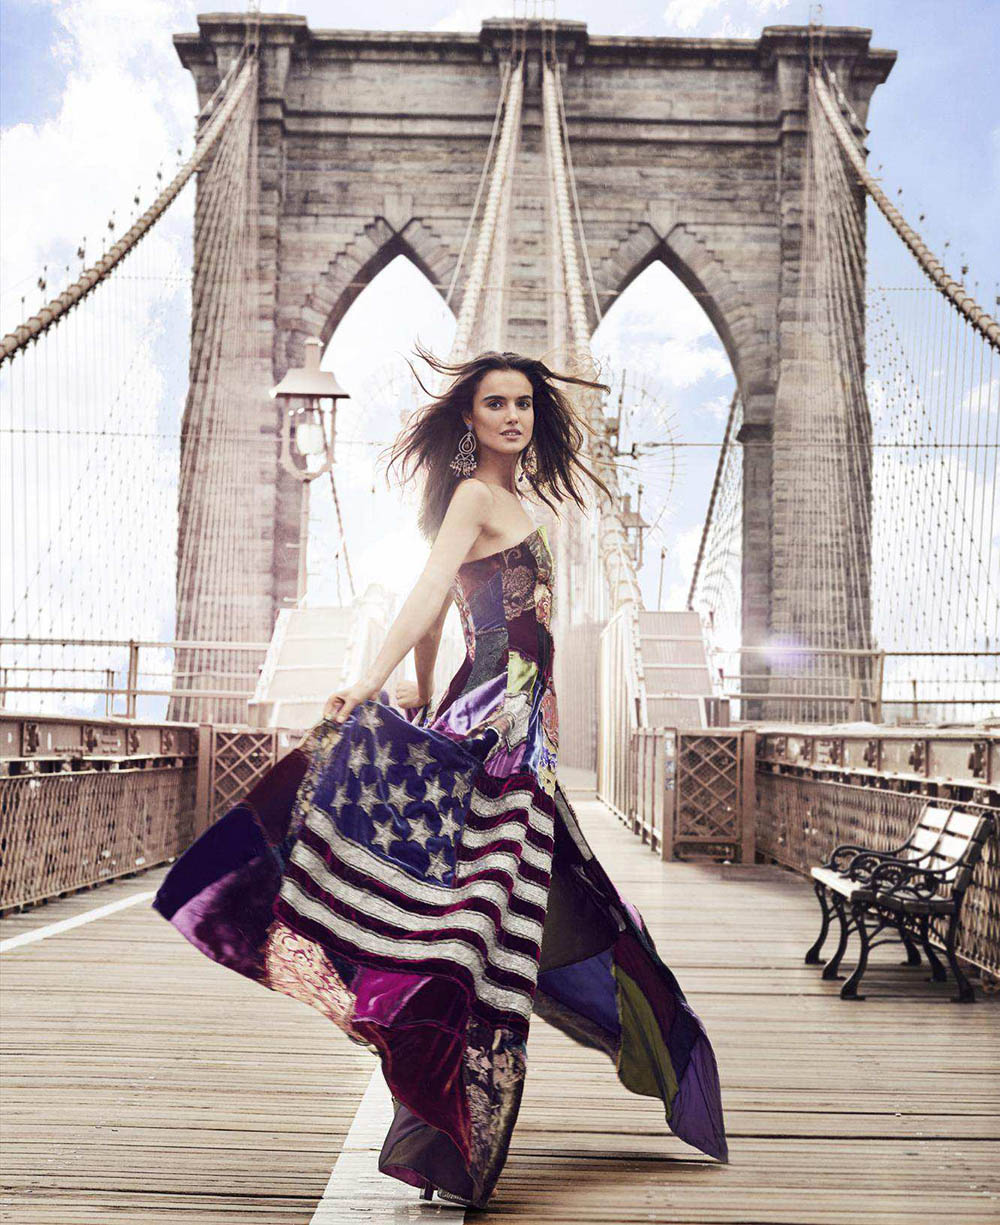 ''American Dream'' by Alexi Lubomirski for Harper's Bazaar US September 2018